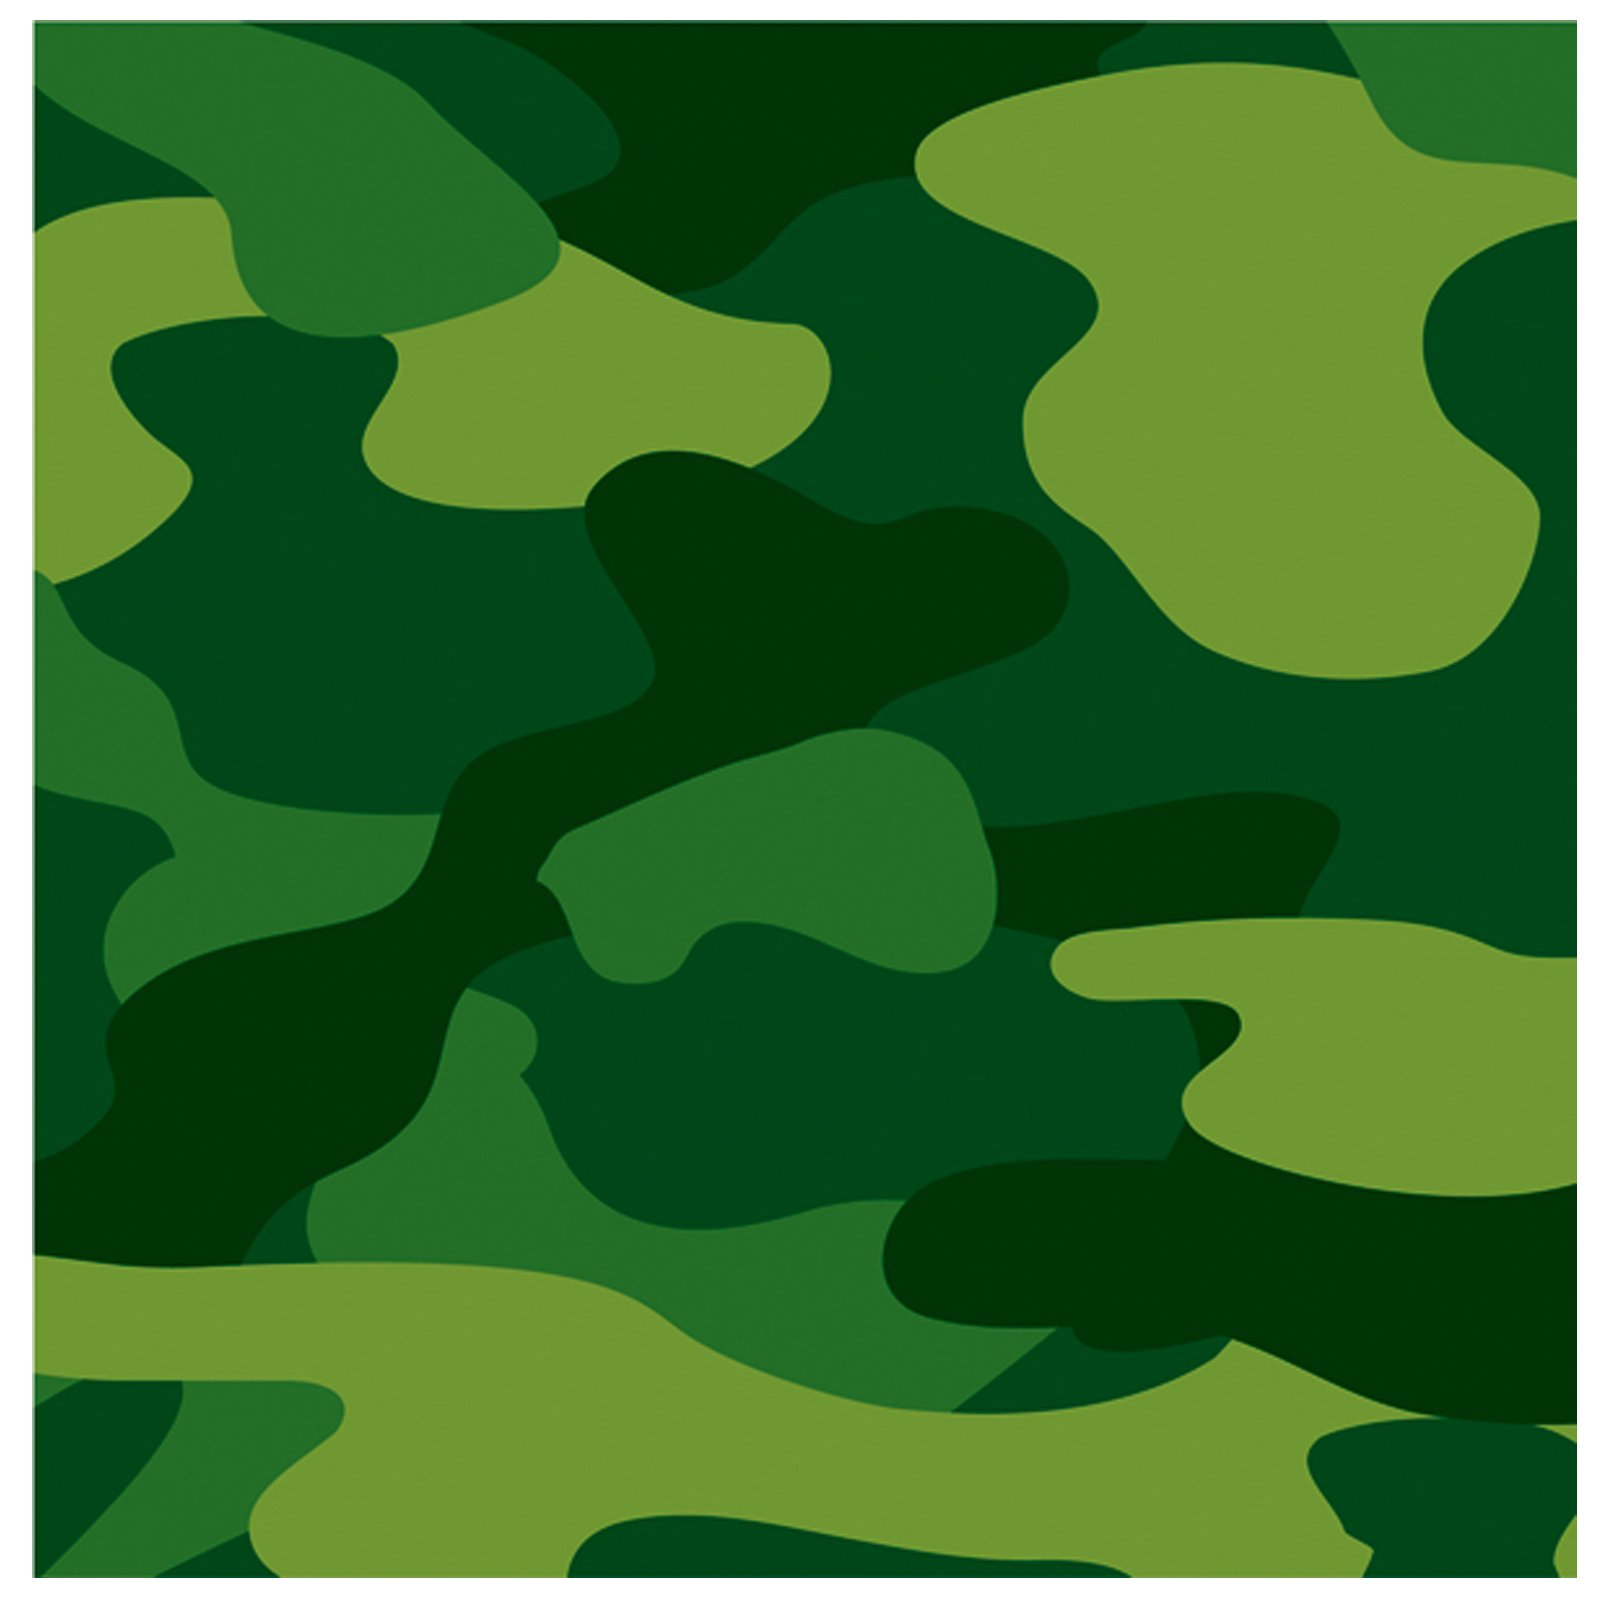 Camo Gear Lunch Napkins (16 count)